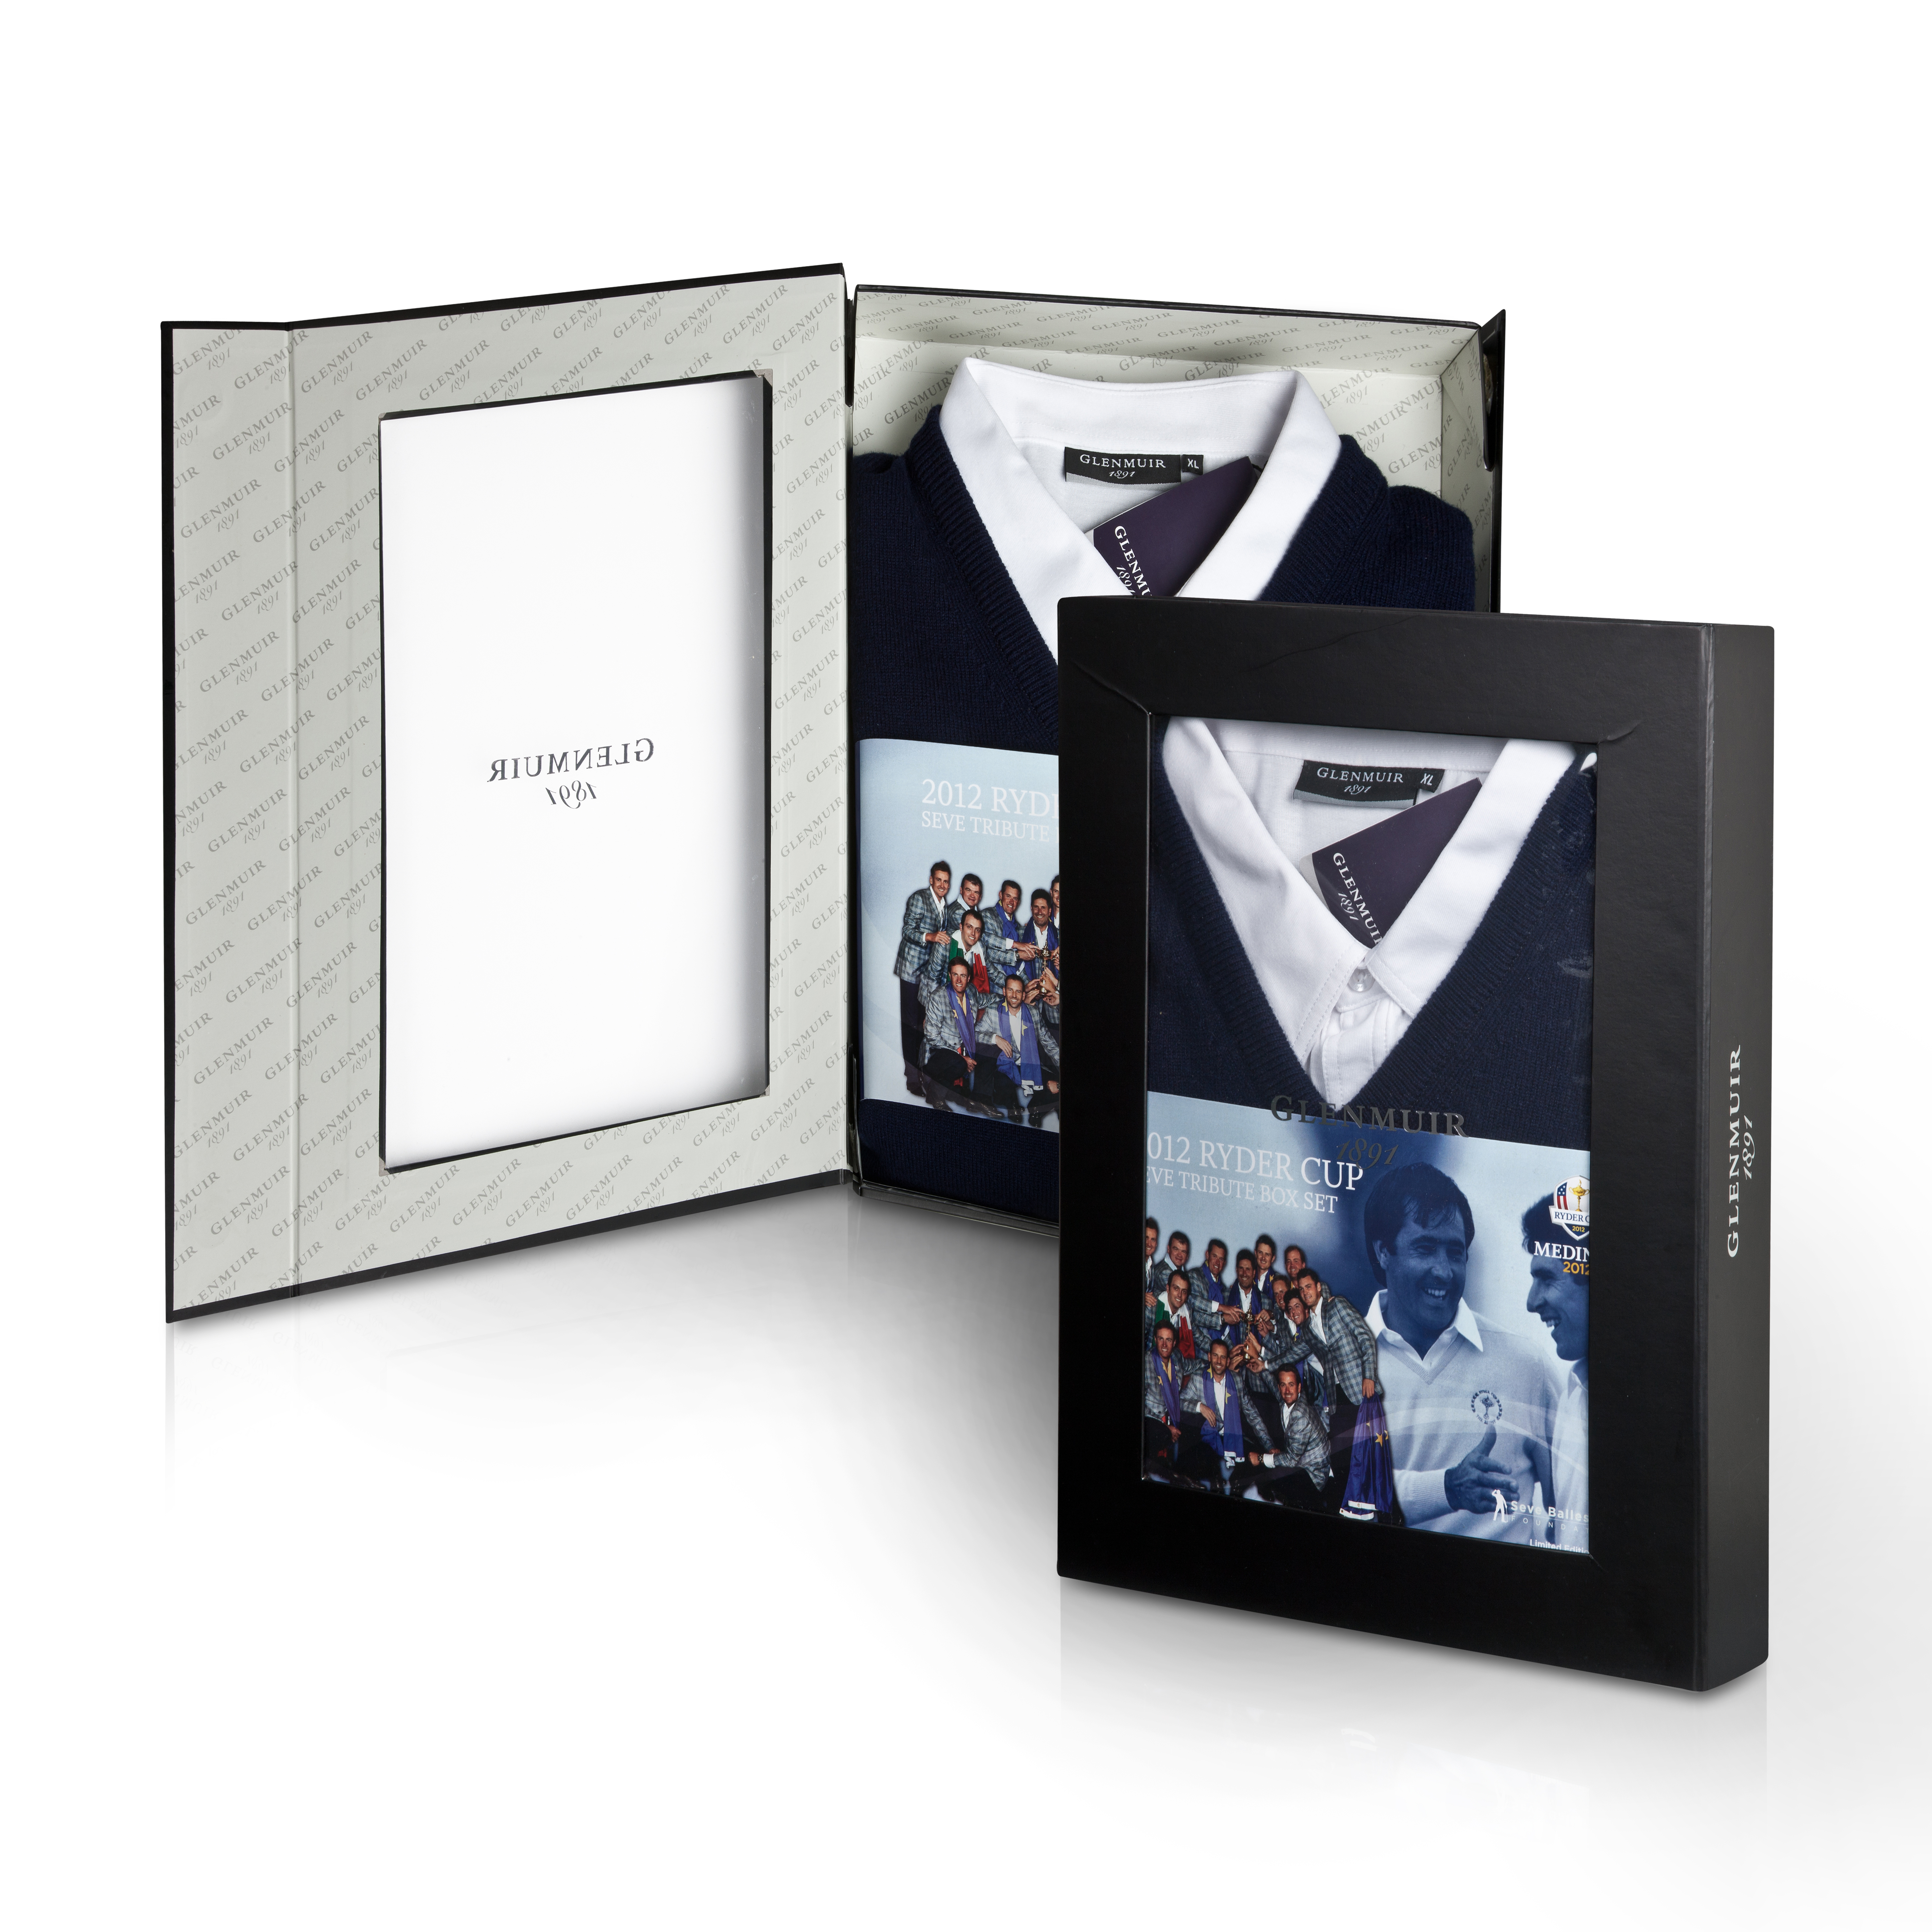 The 2012 Ryder Cup Seve Tribute Box Set